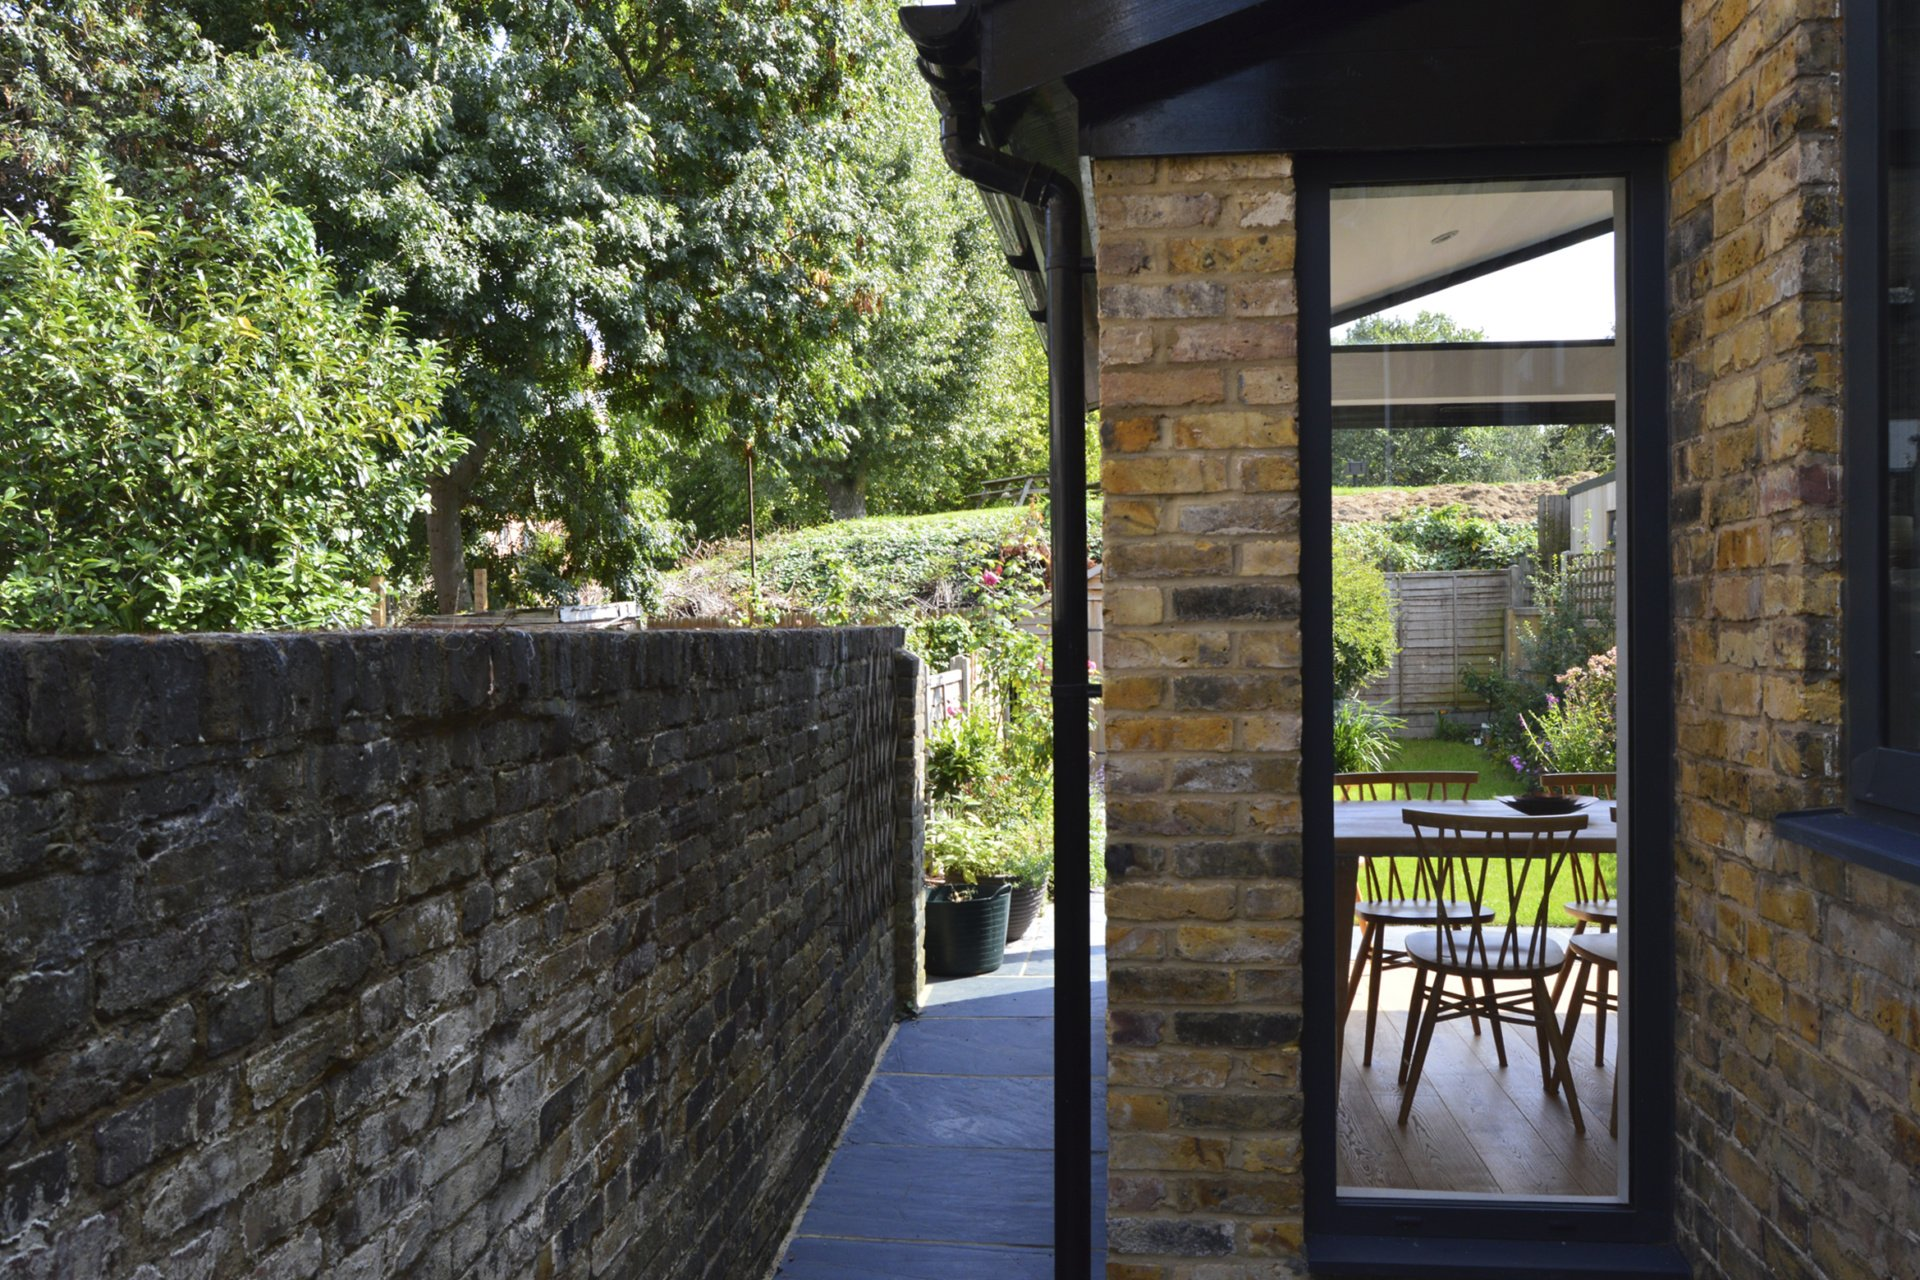 Nunhead Lewisham SE15 House kitchen extension – Side through view Nunhead, Lewisham SE15 | House kitchen extension